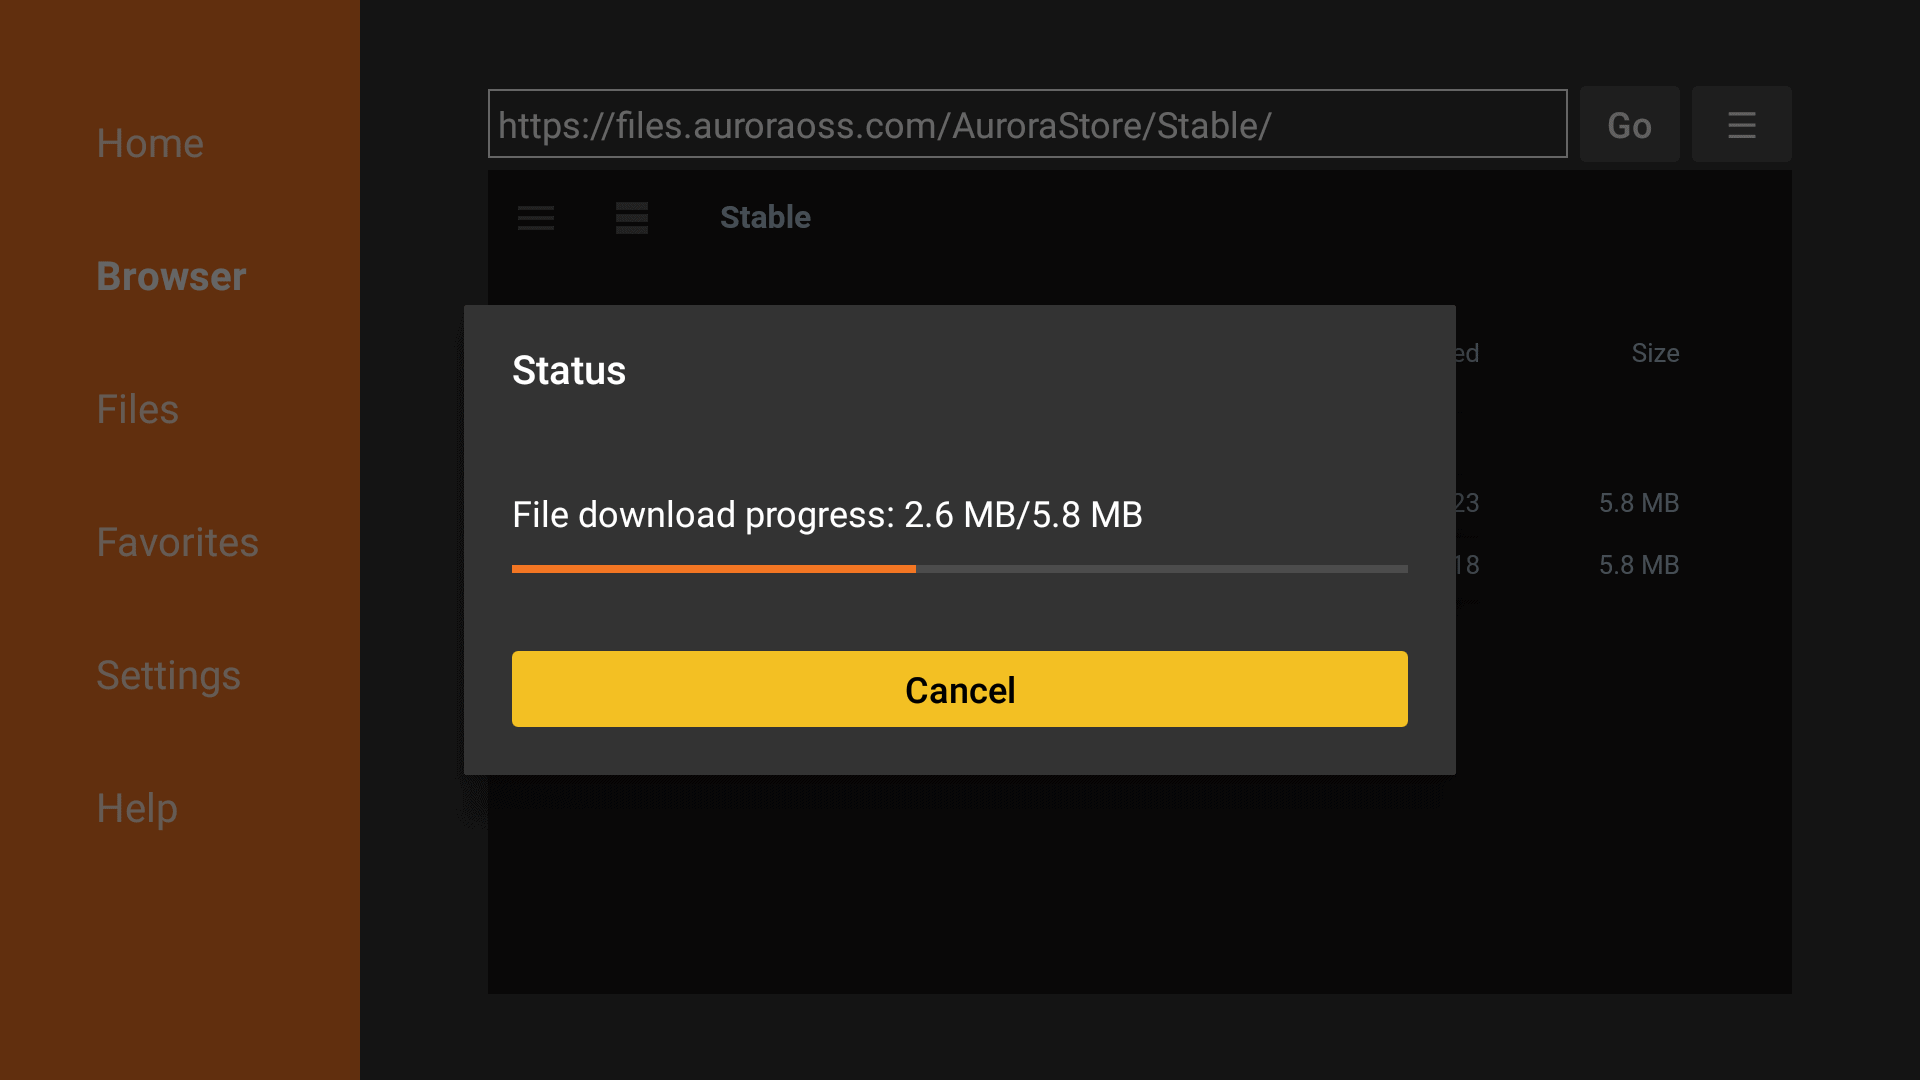 download will start now